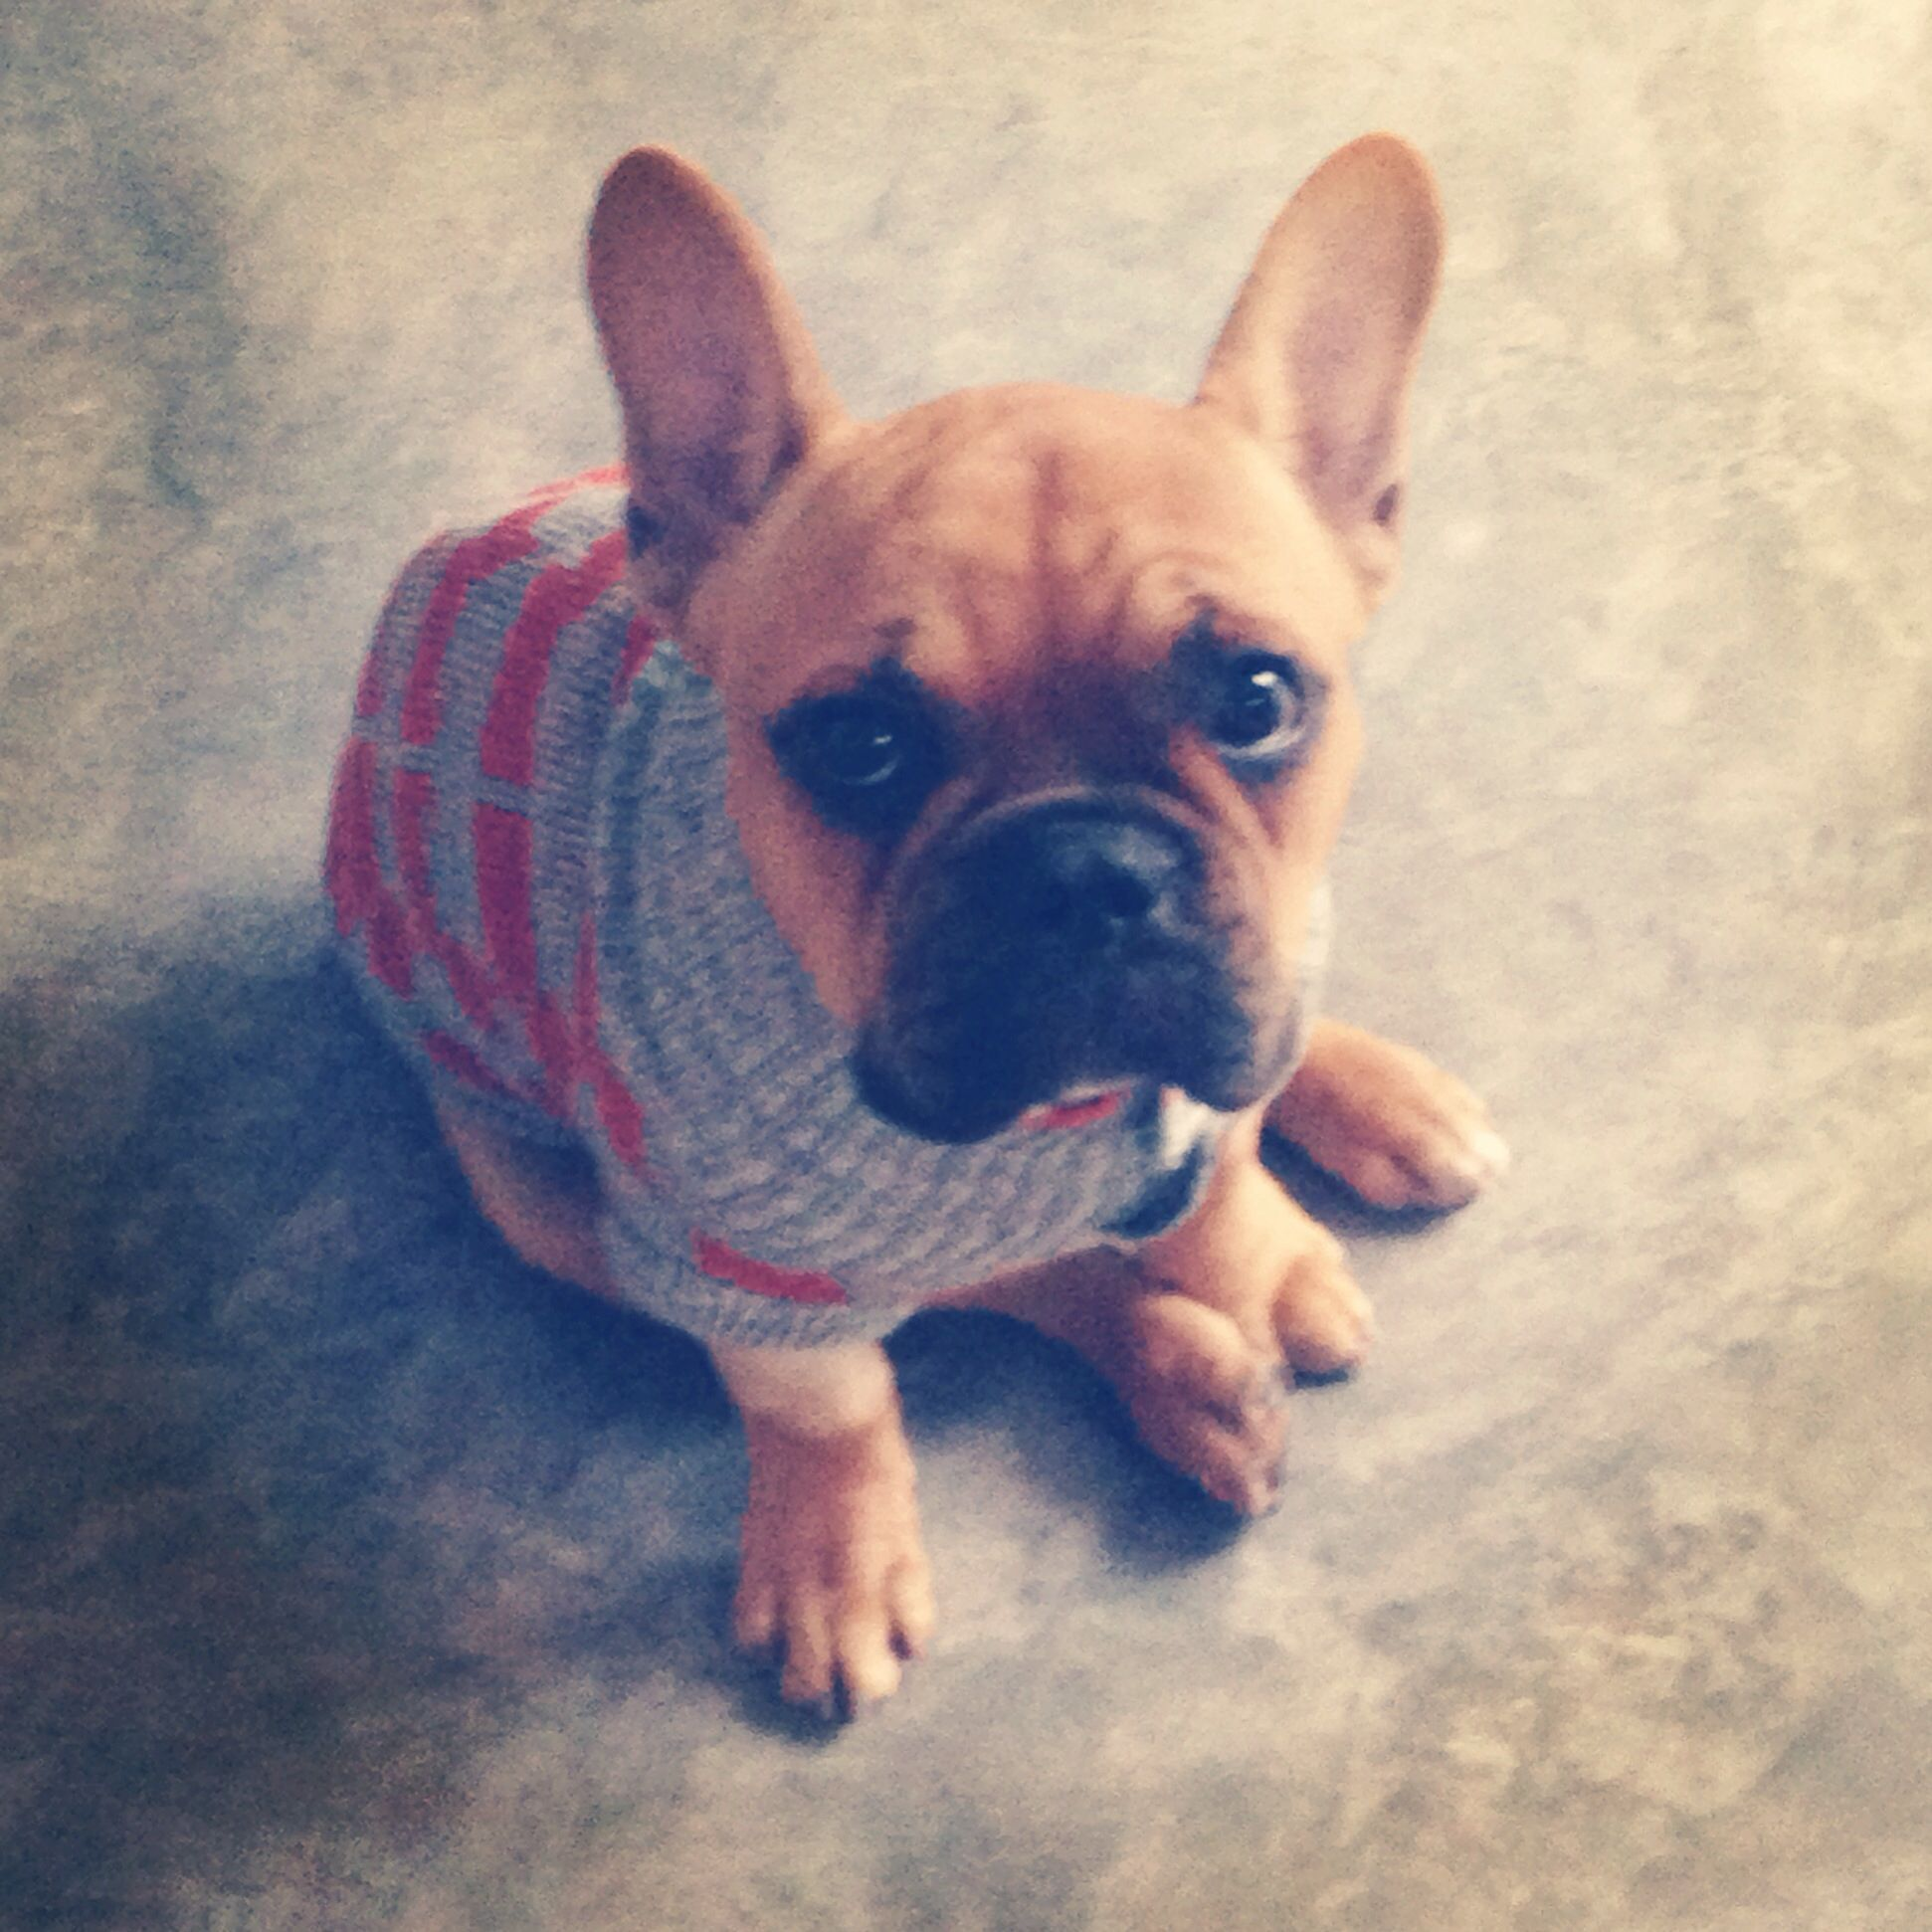 Back home after a week in the hosp french bulldog